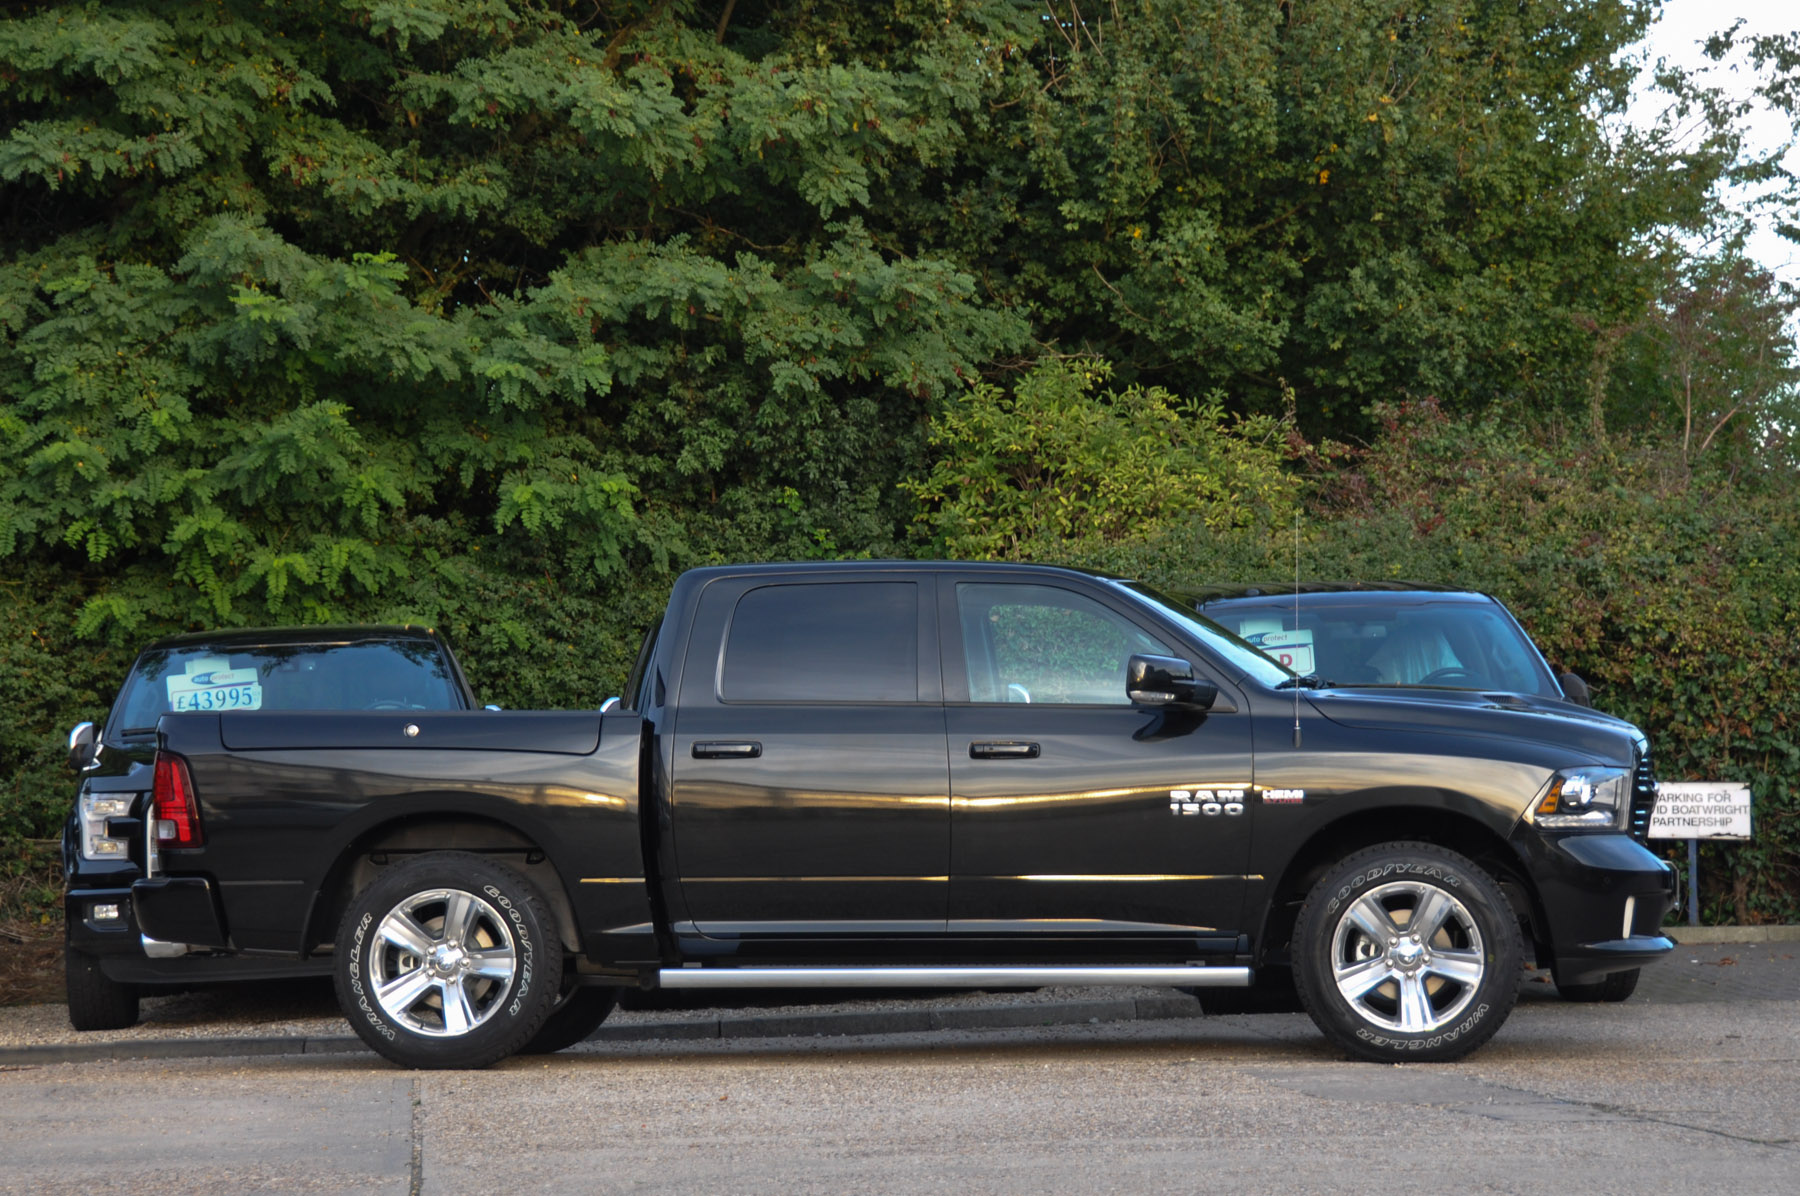 New Dodge Ram 1500 Crew Sport Rambox And Air Suspension